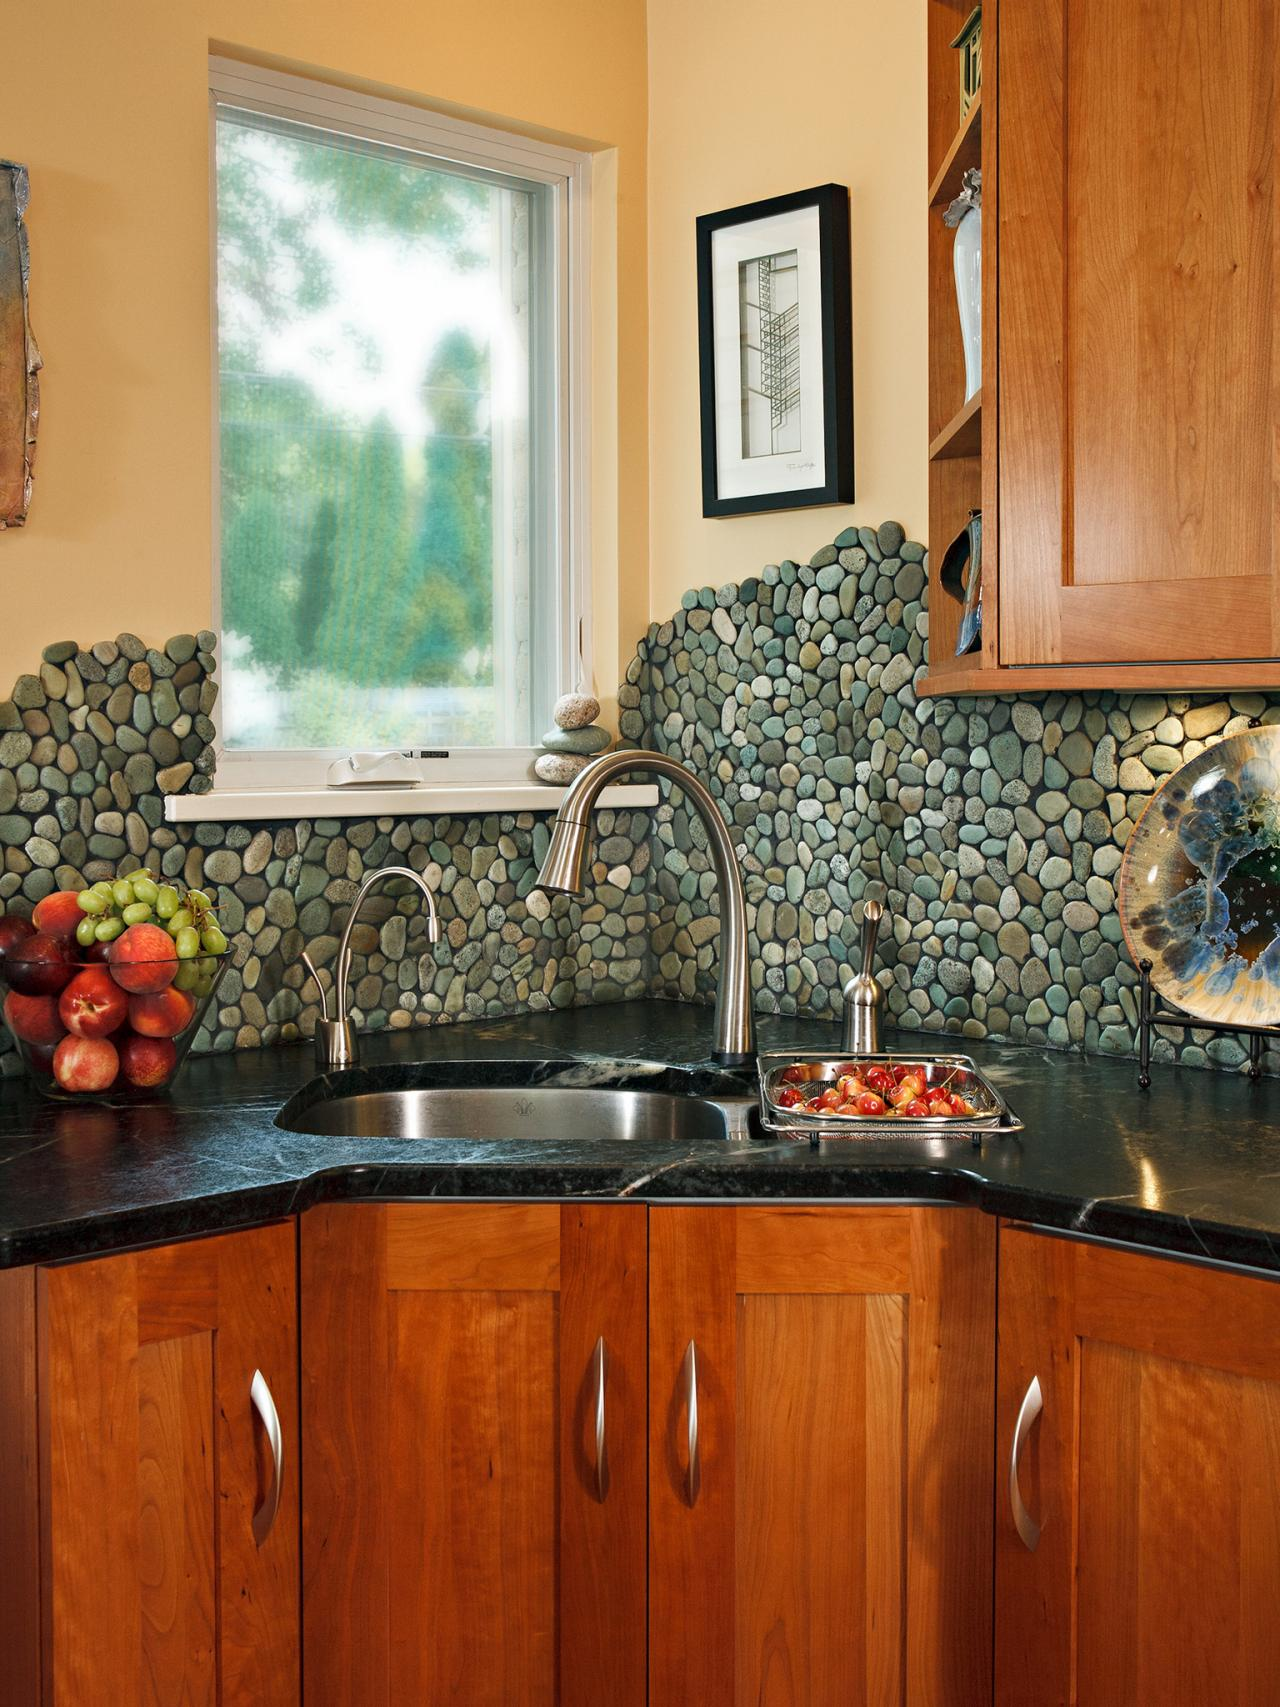 Kitchen Backsplash Idea mosaic backsplashes: pictures, ideas & tips from hgtv | hgtv